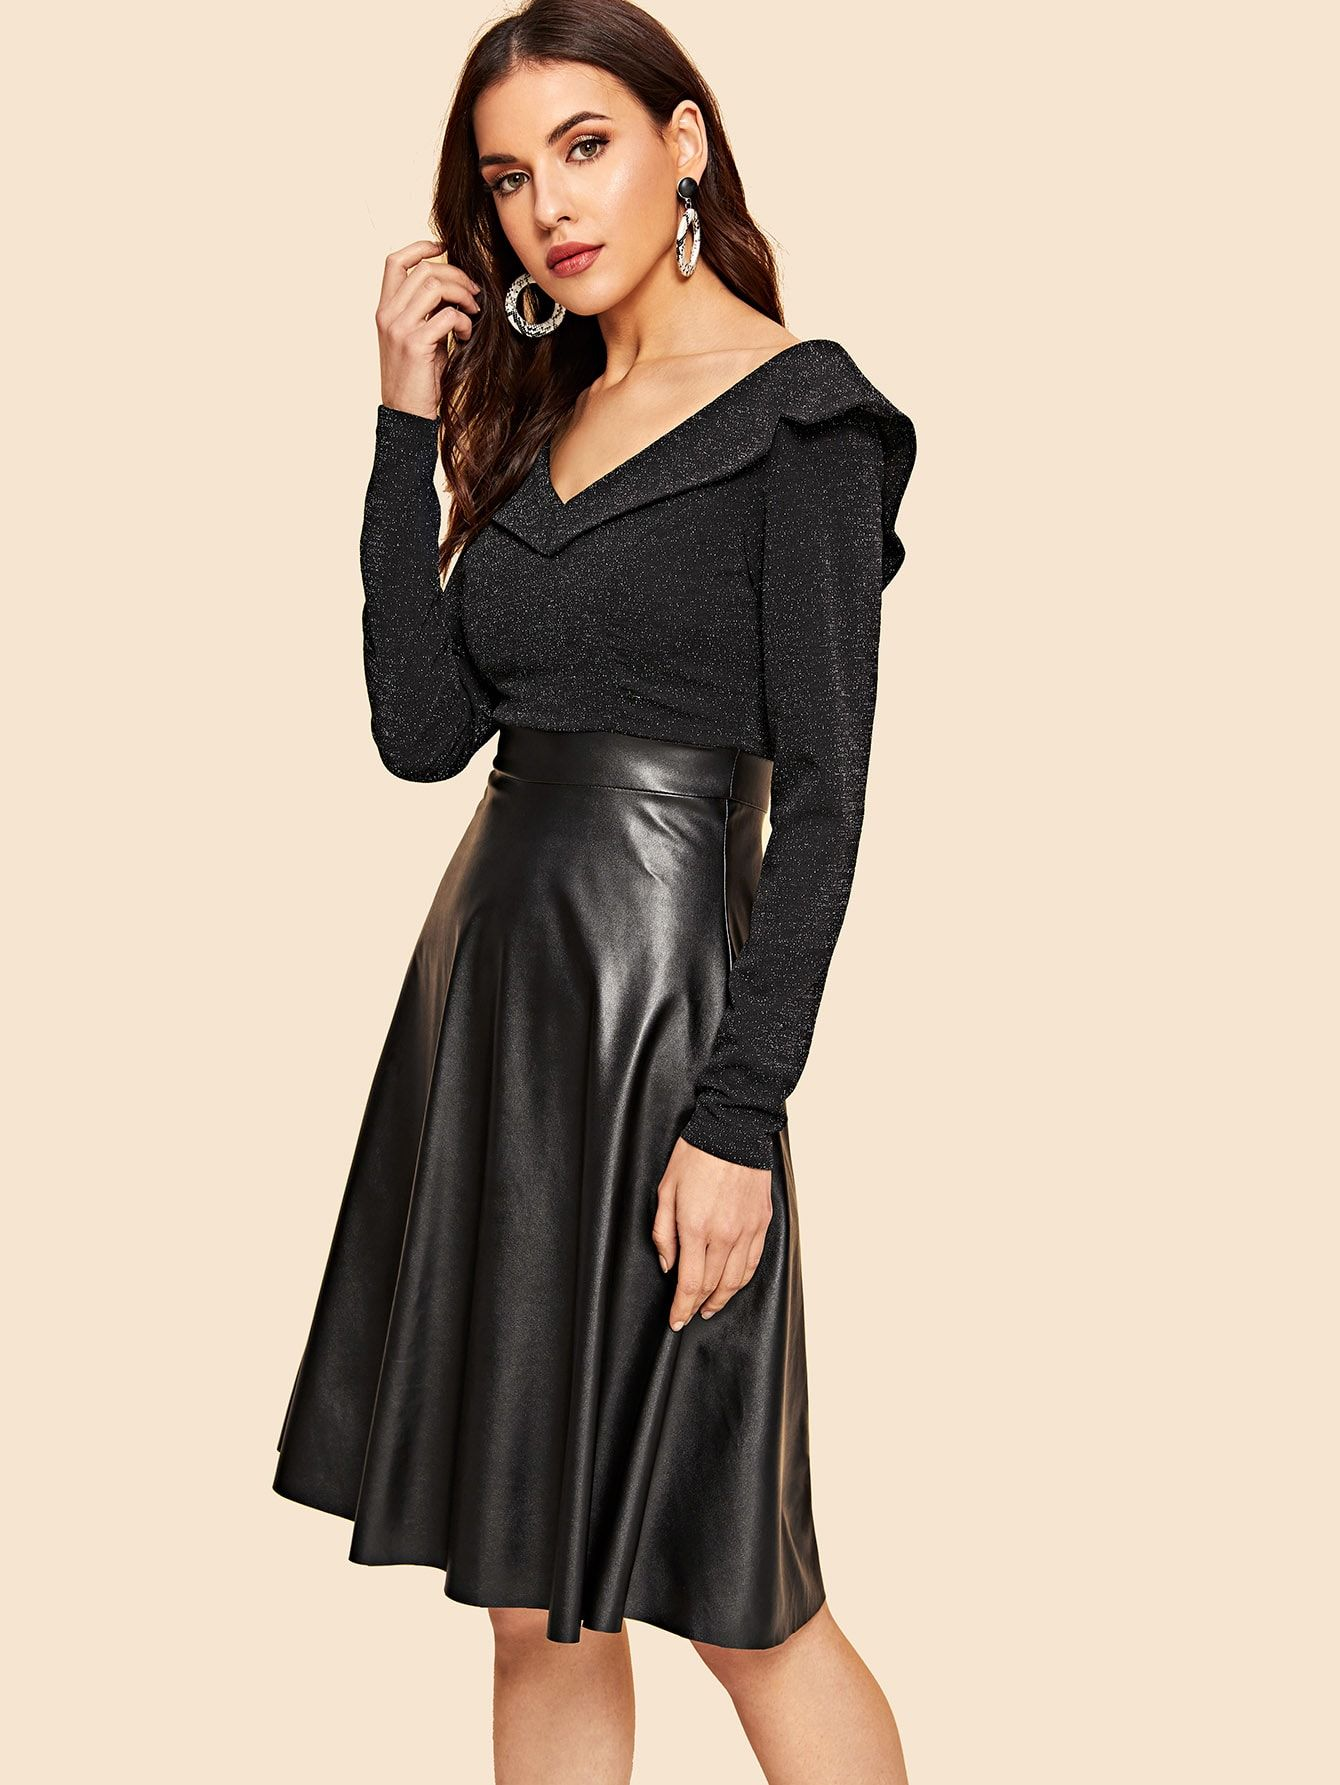 22ad539dea Vintage A Line Zipper Fit and Flare V Neck Long Sleeve Regular Sleeve High  Waist Black Knee Length 40s Foldover Front Glitter Bodice PU Dress